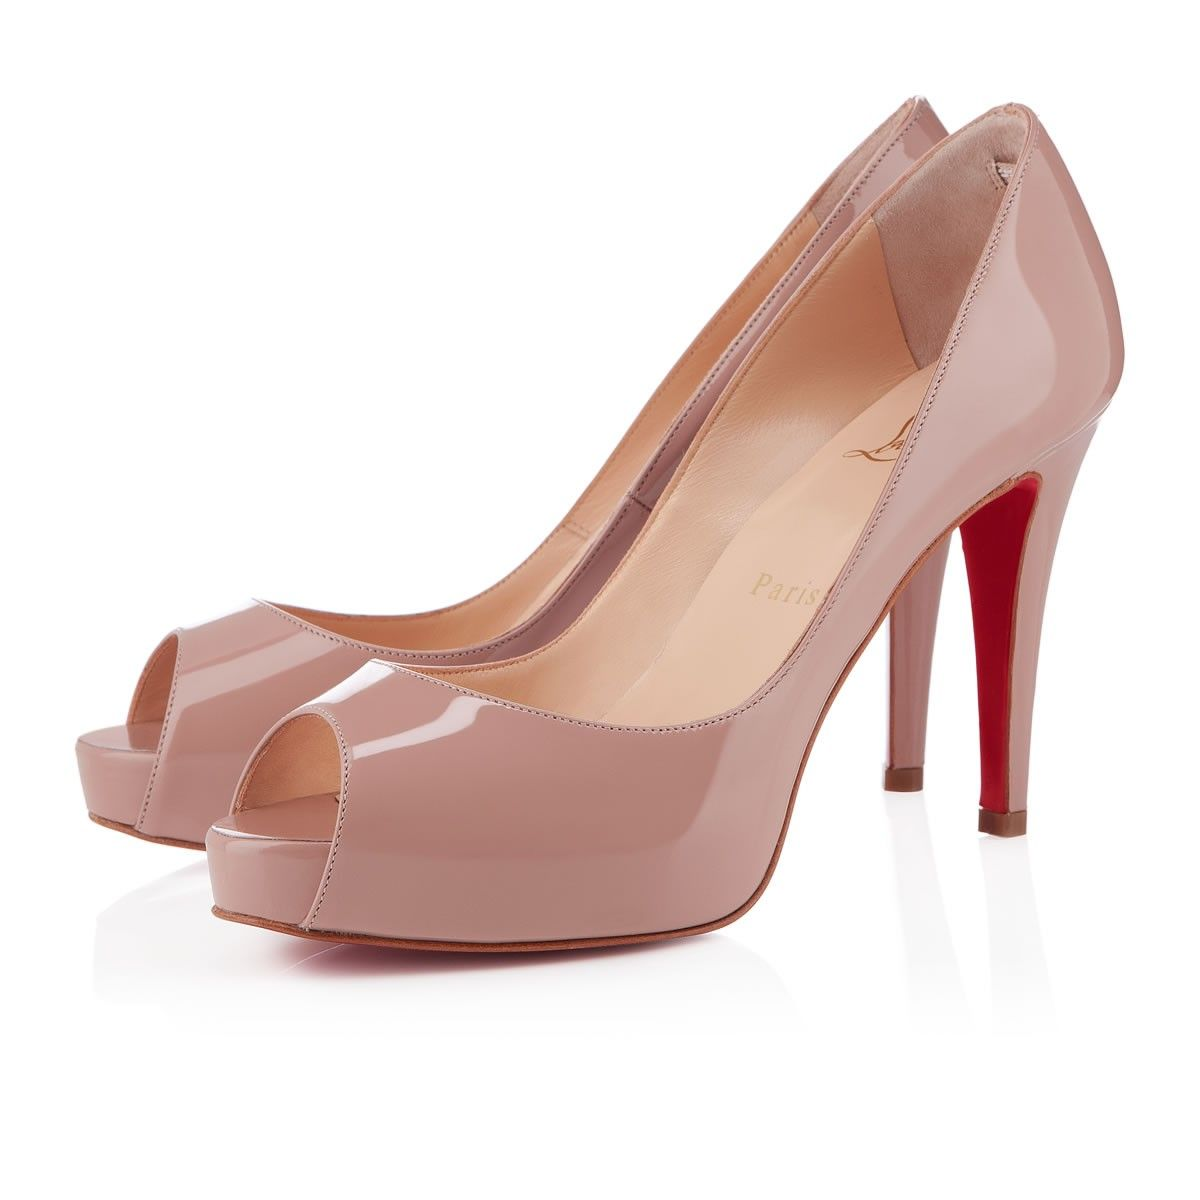 78b392fbf7d6f VERY PRIVE vernis 100 mm, Cuir vernis, nude, I don t want them, I just need  them.  heels  gorgeous